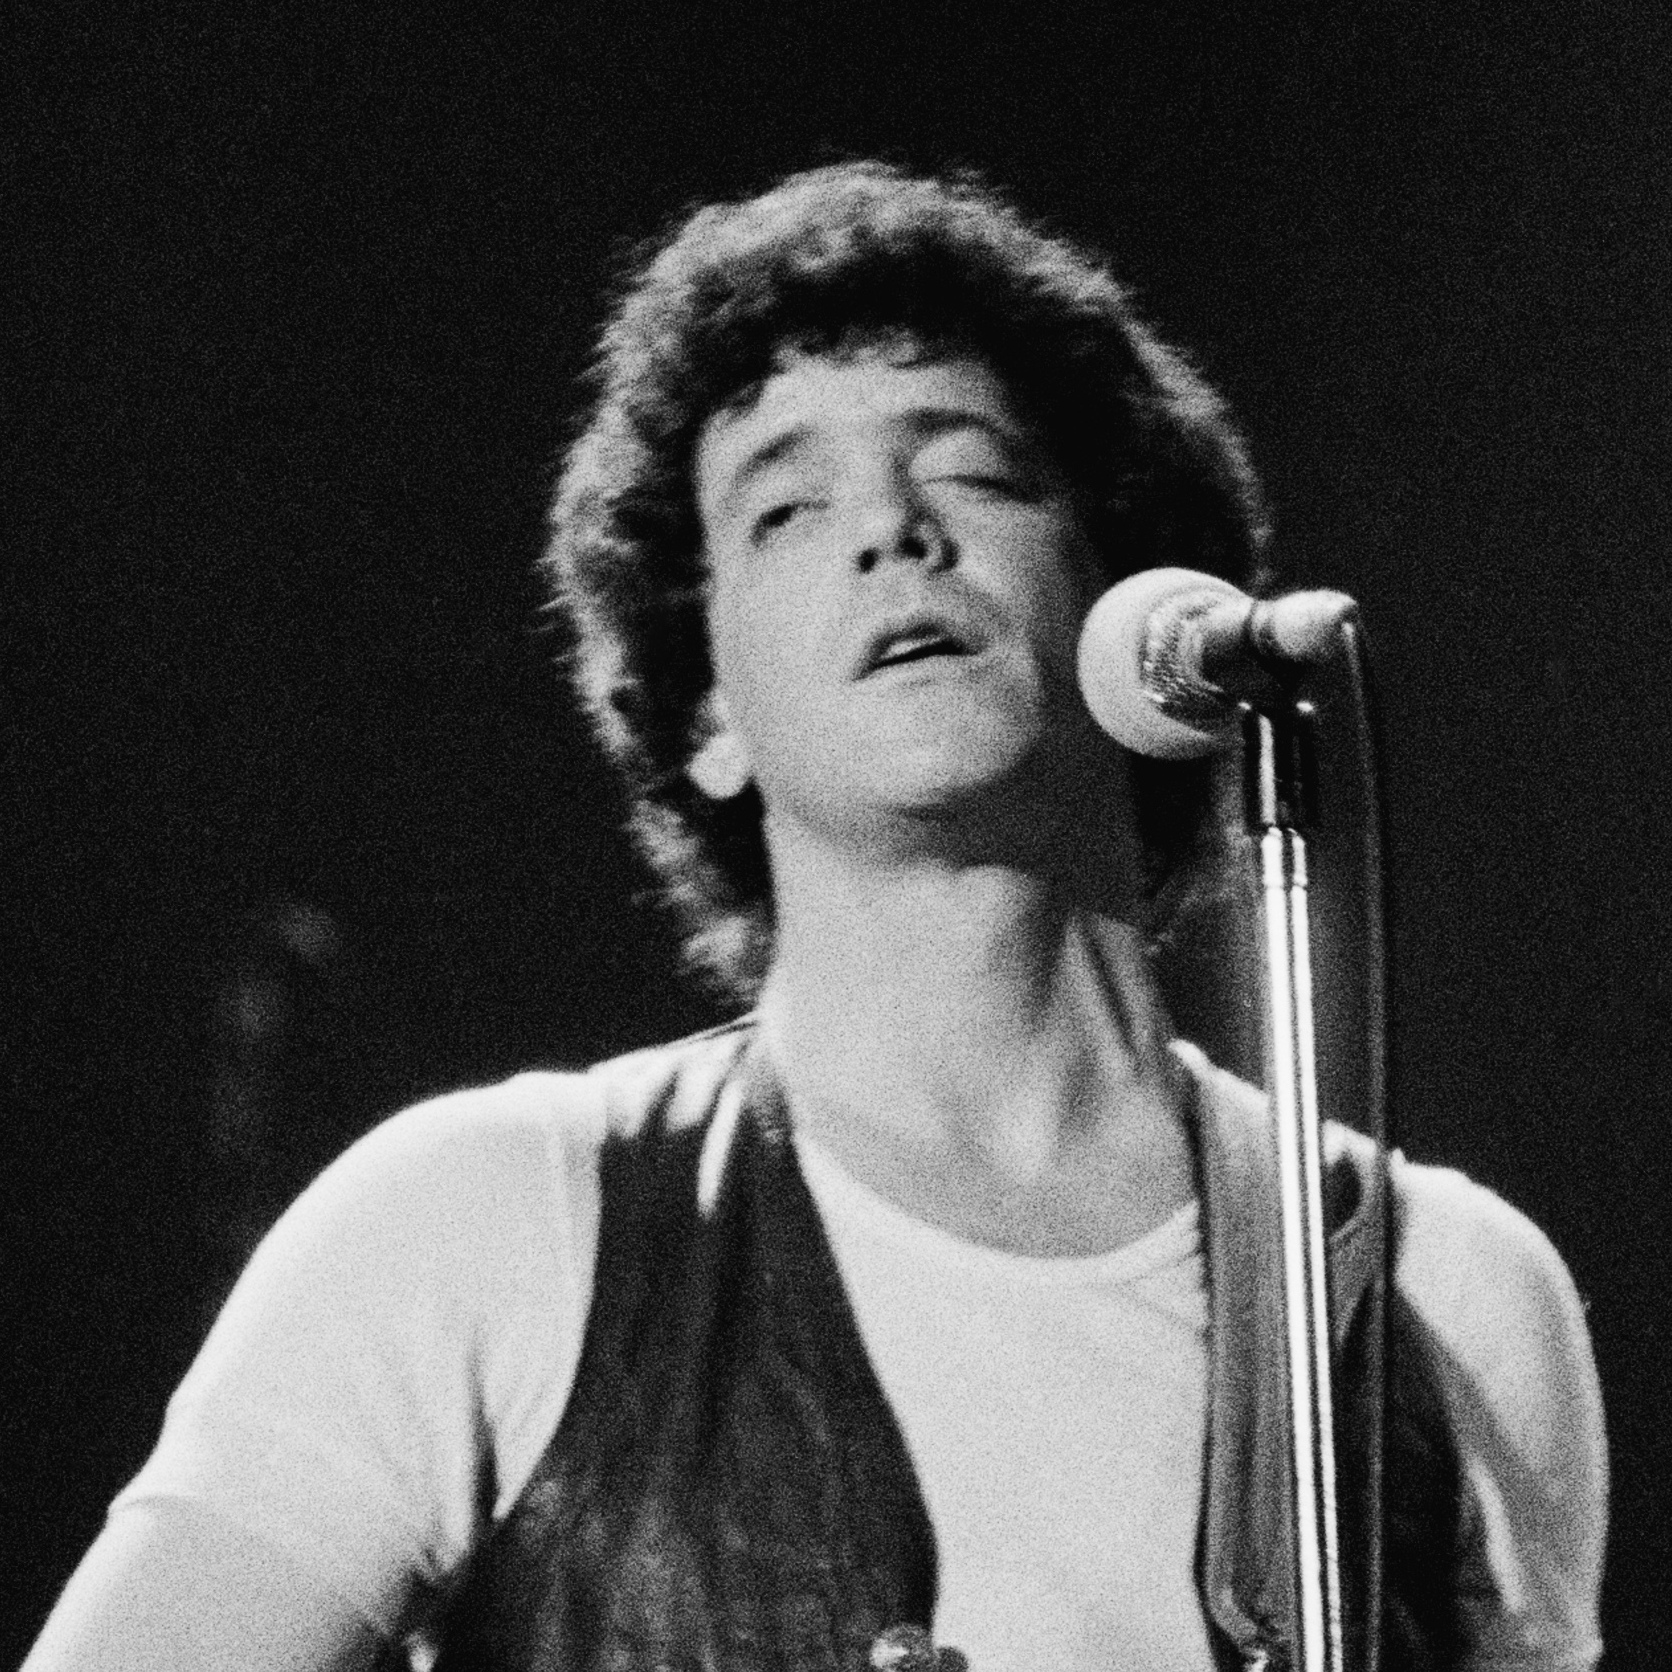 American rock singer-songwriter Lou Reed performs at the Hammersmith Odeon in London in 1975. He is playing a transparent, plexiglass guitar. Reed died Sunday at the age of 71.